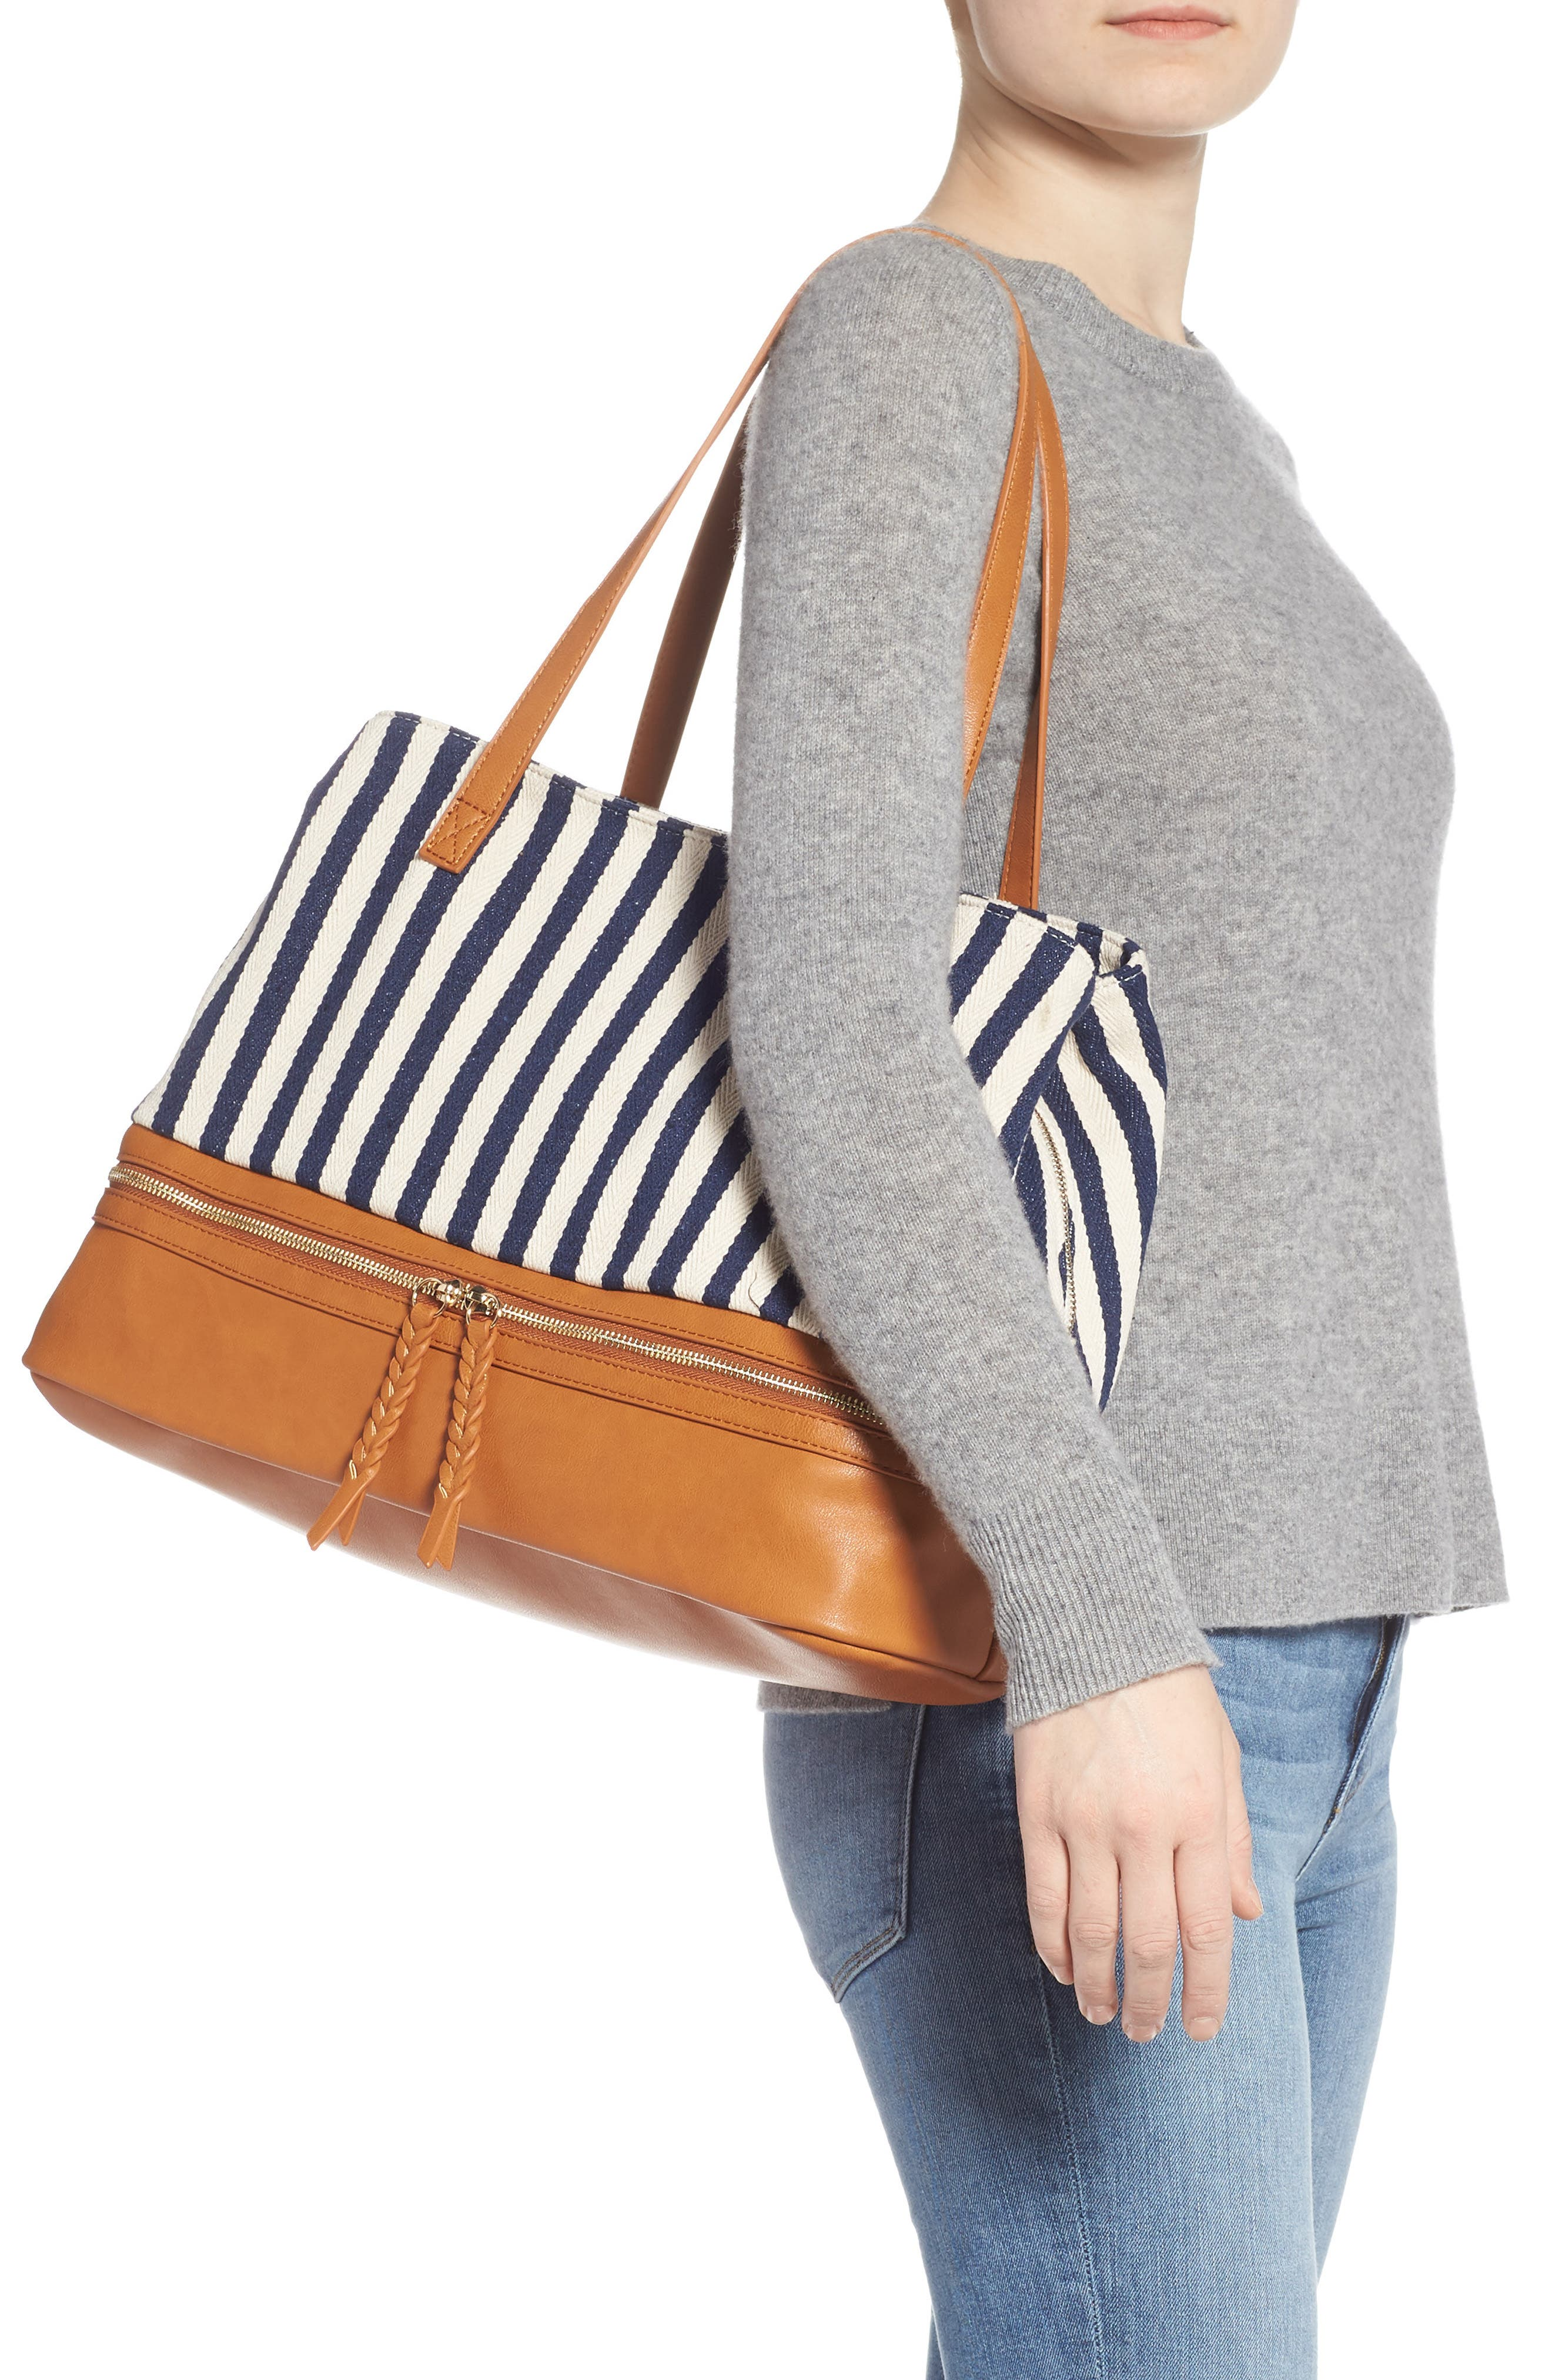 STREET LEVEL, Faux Leather Trim Weekend Bag with Shoe Base, Alternate thumbnail 2, color, 400